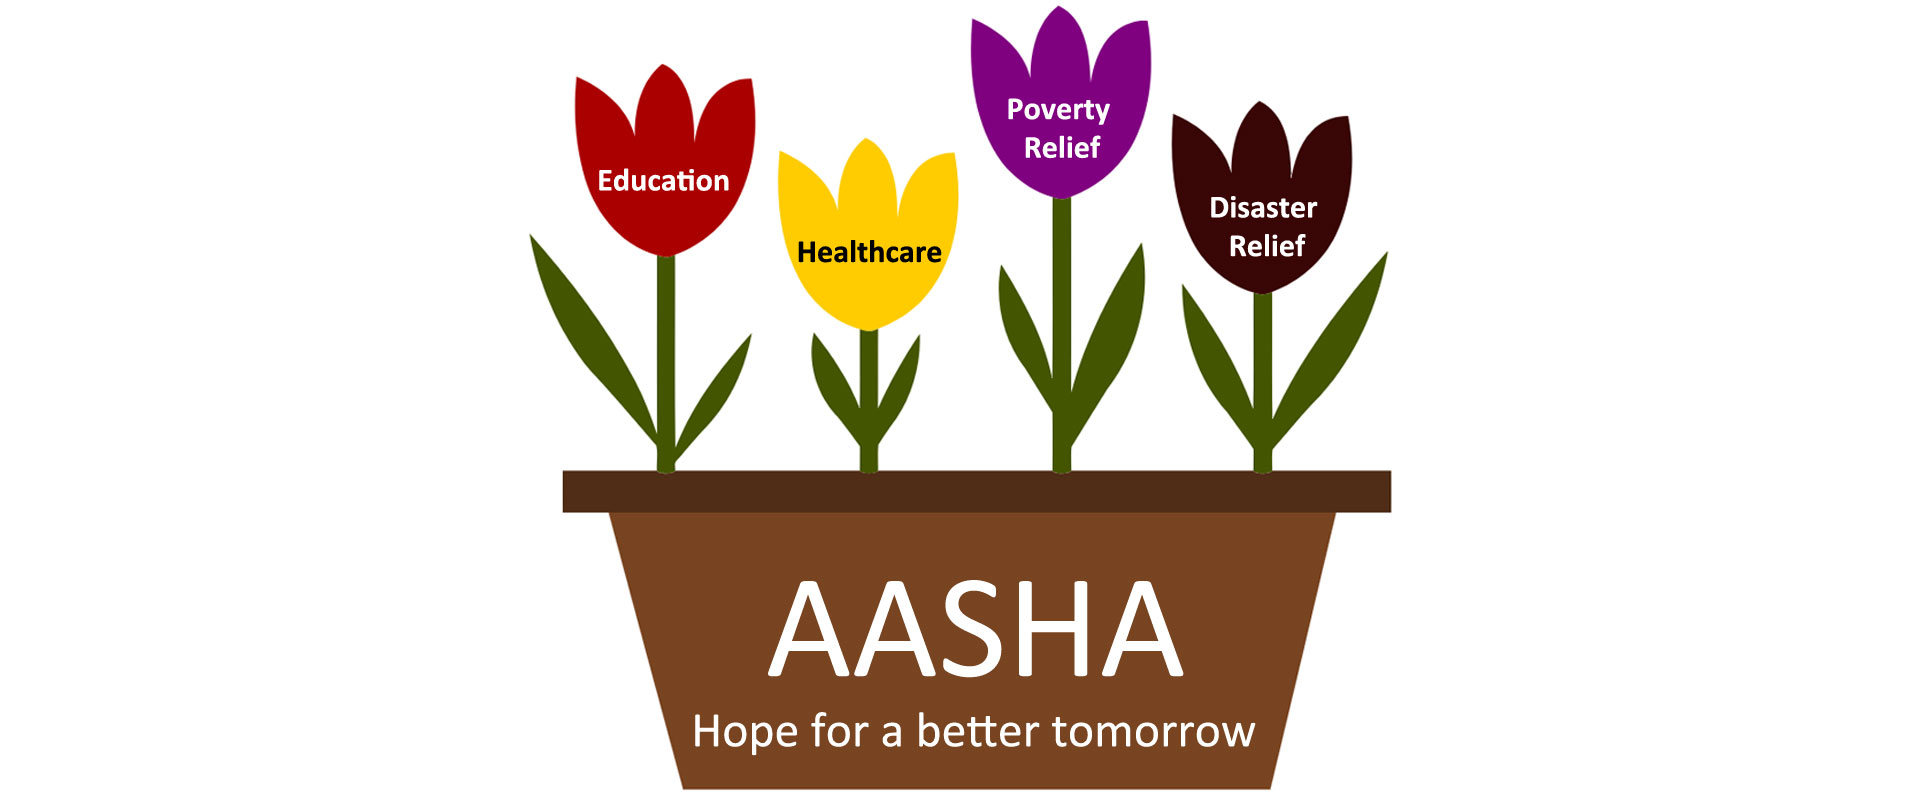 Aasha - Give them hope